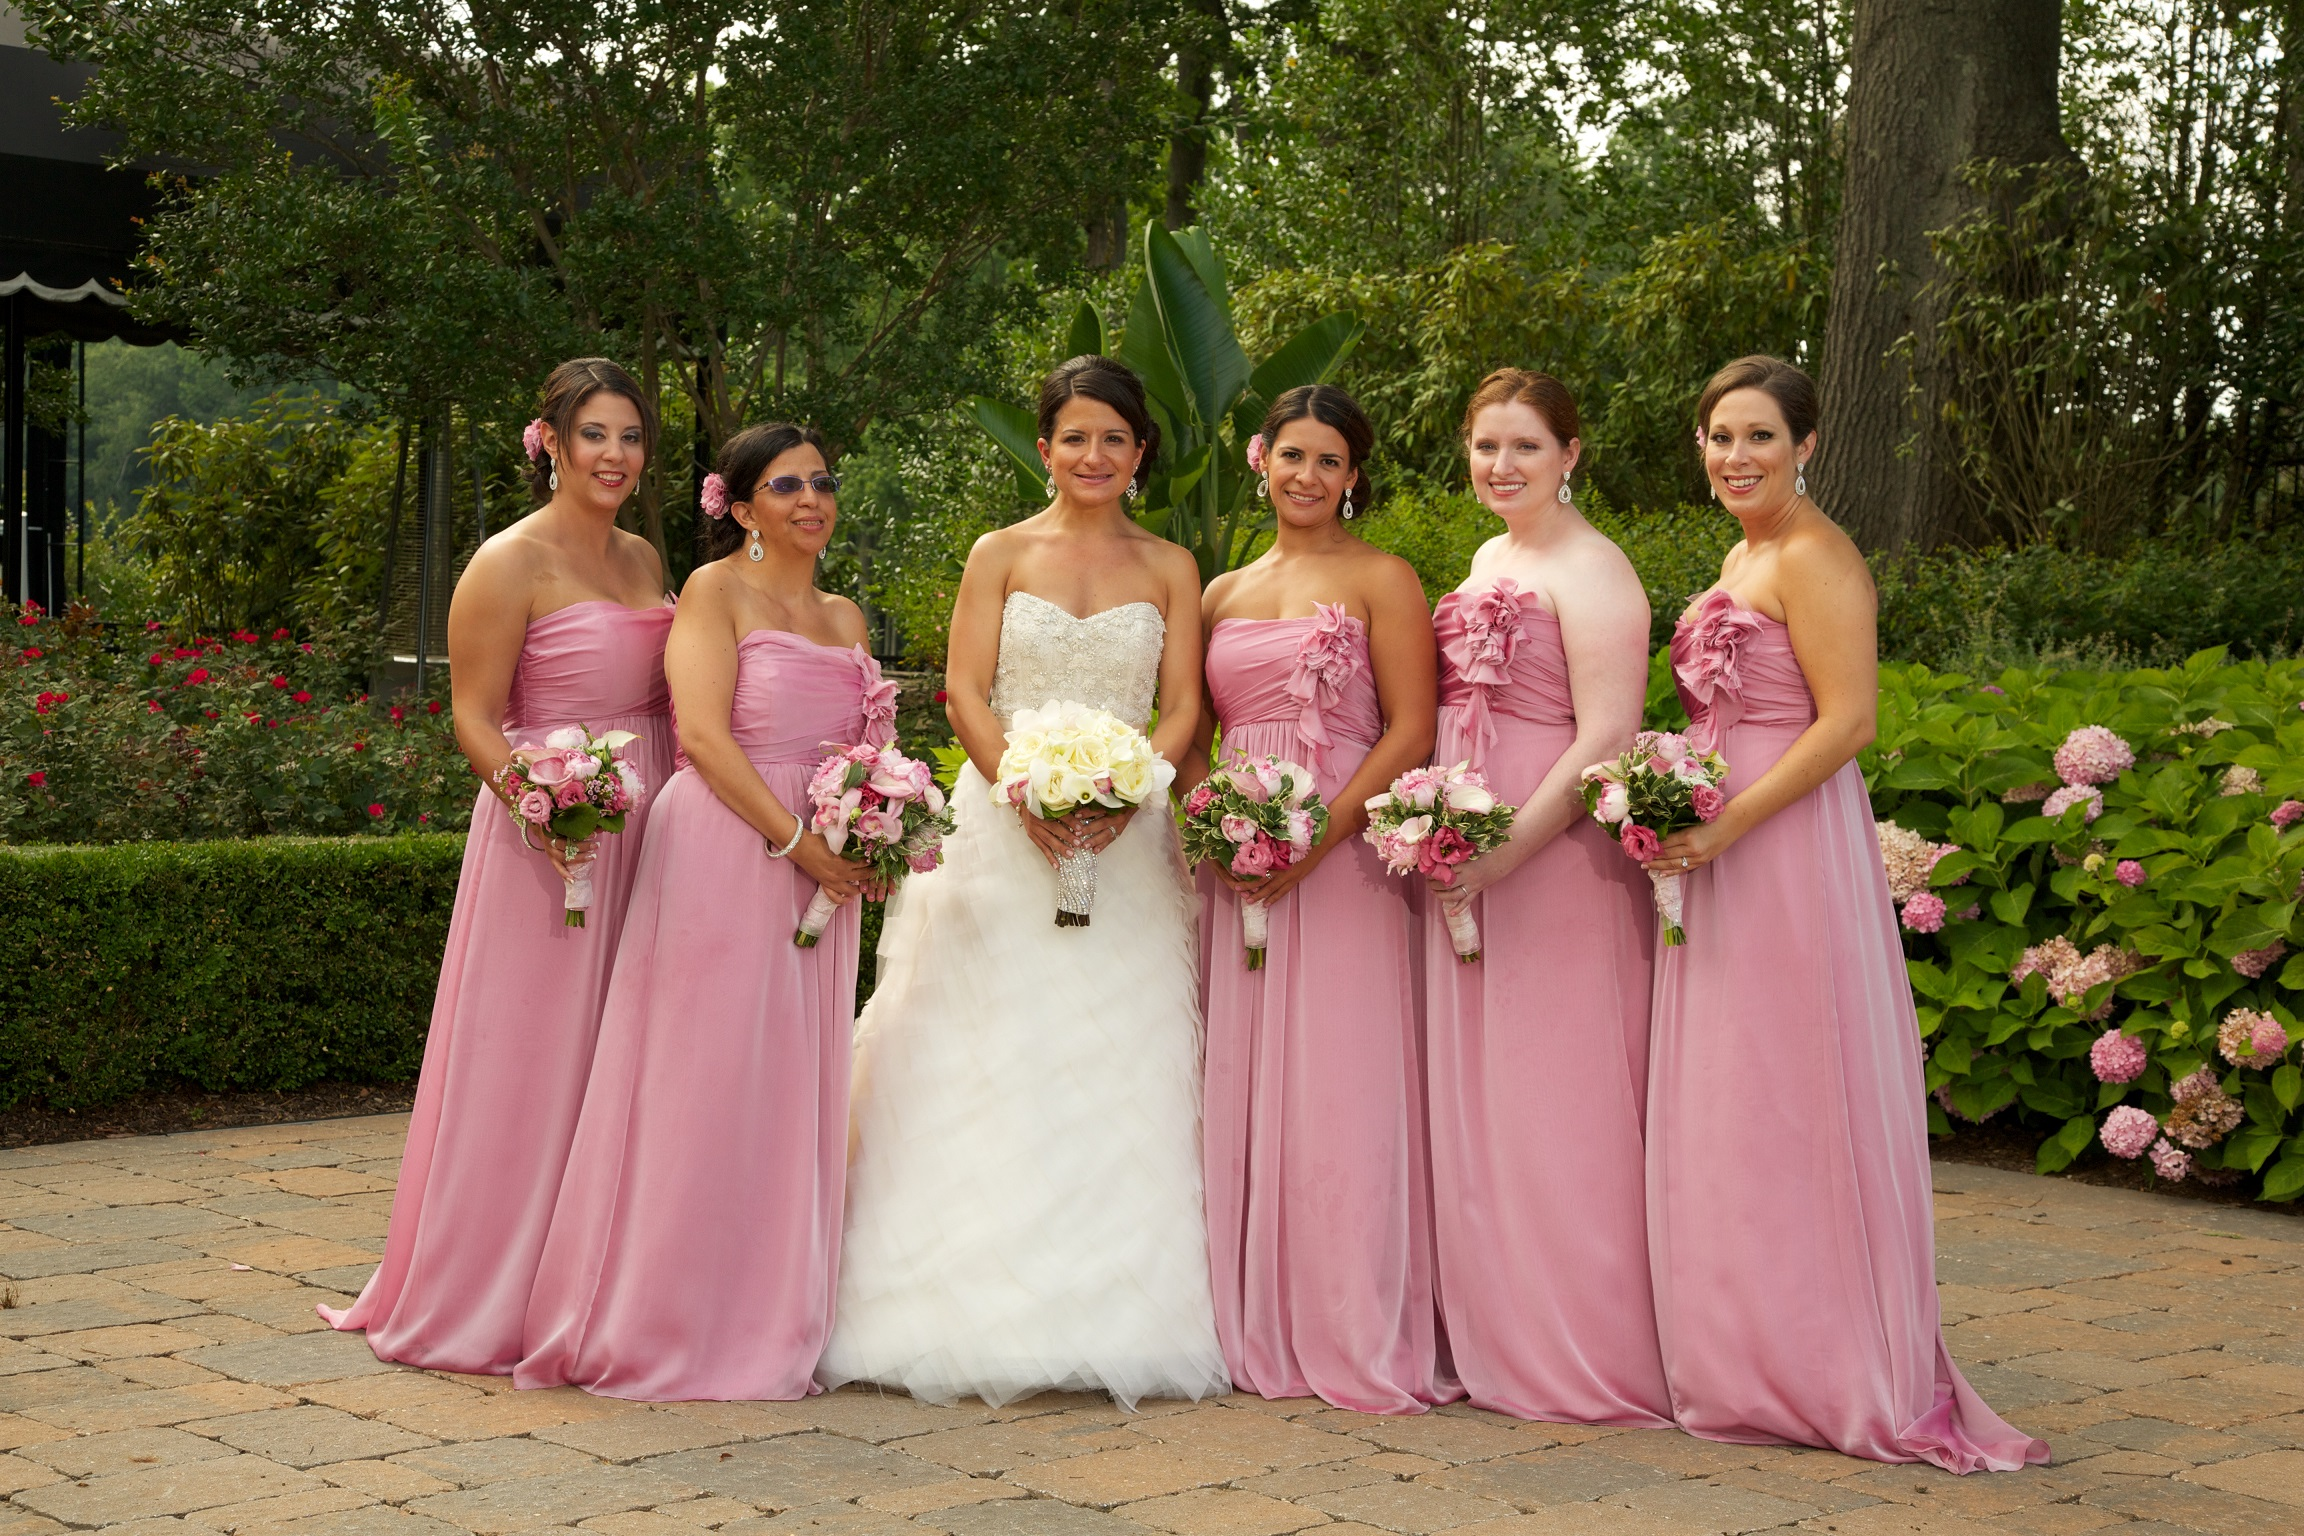 Bridal Gowns and Bridesmaids Dresses  JLM Weddings